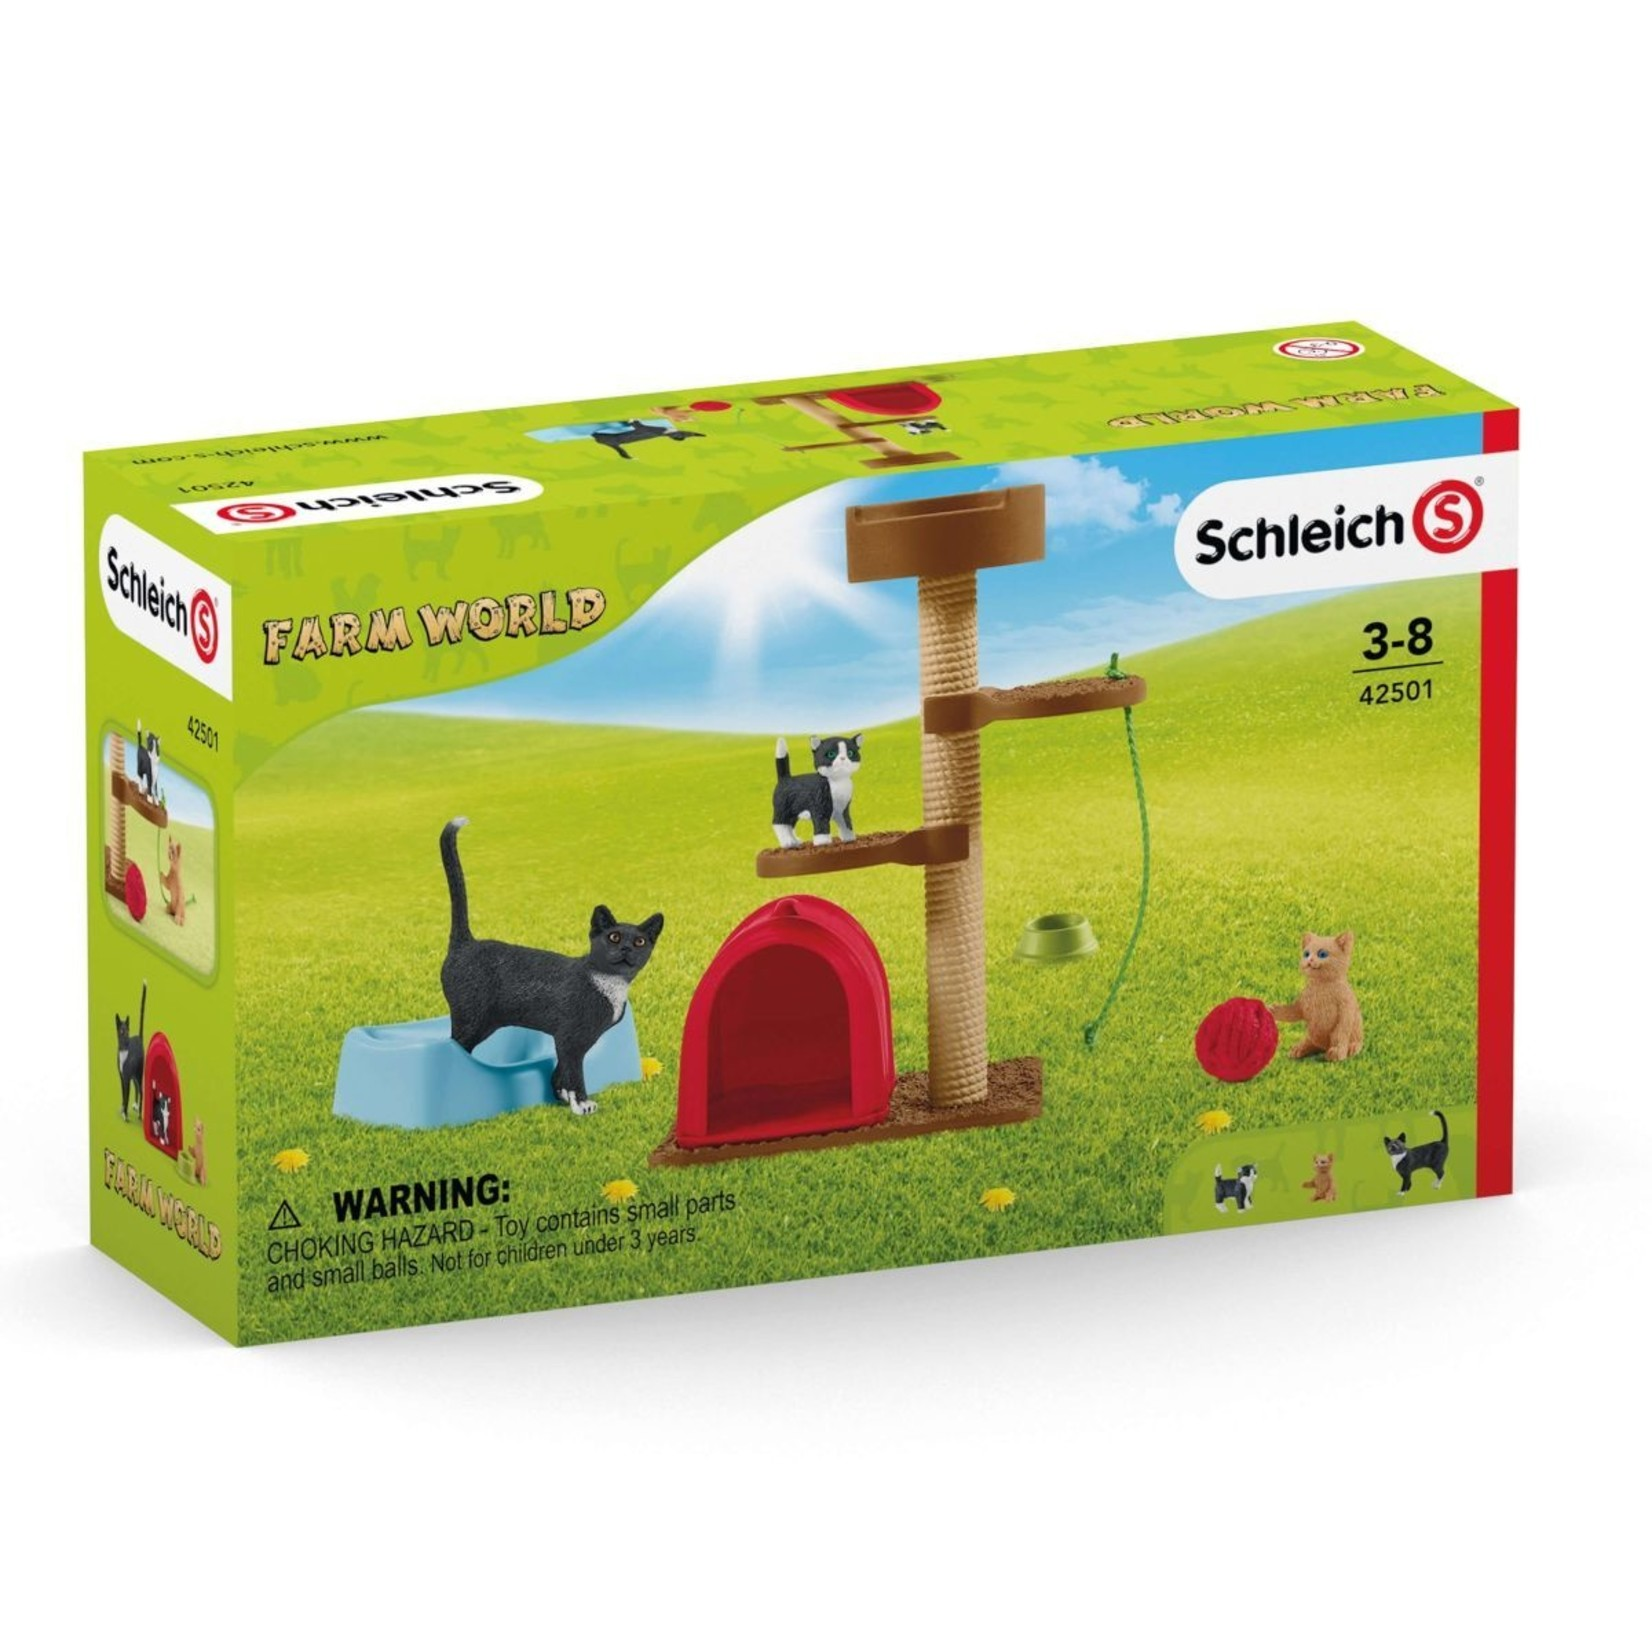 SCHLEICH PLAYTIME FOR CATS